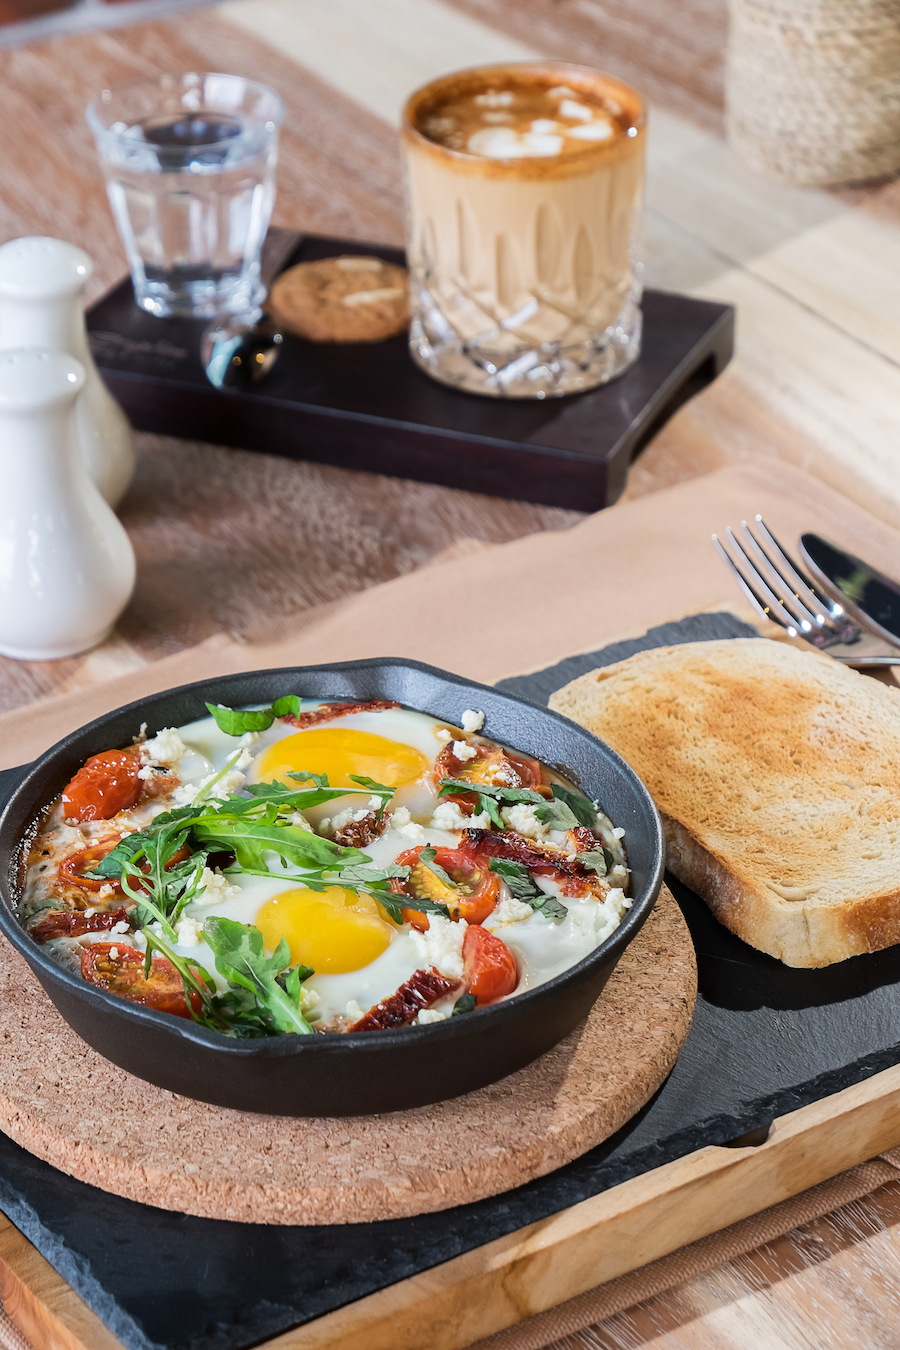 Eruption Bistro & Coffee Bali Baked Eggs